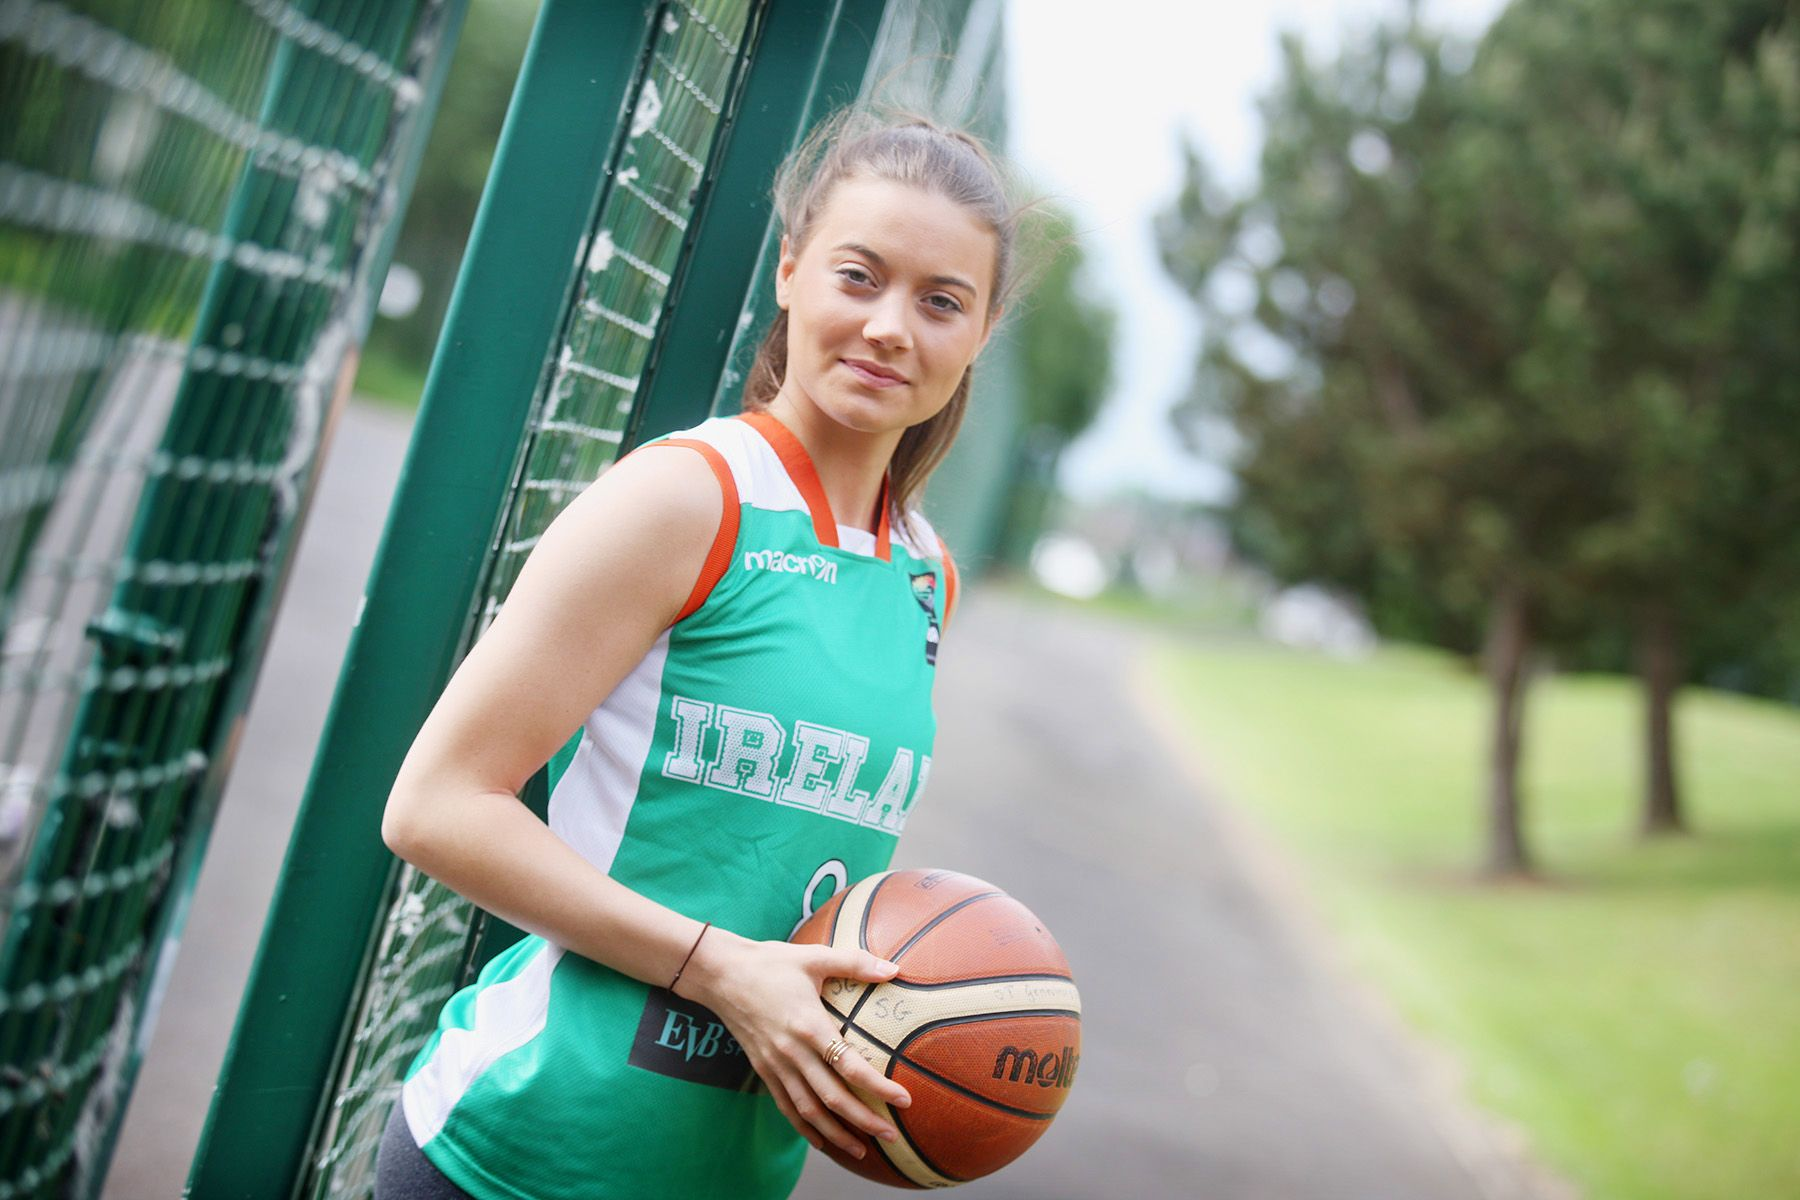 SHOOTING HOOPS: Erin Maguire has been selected for the Under-20 Ireland Basketball team and has been offered a prestigious scholarship for Princeton Prep in New Jersey